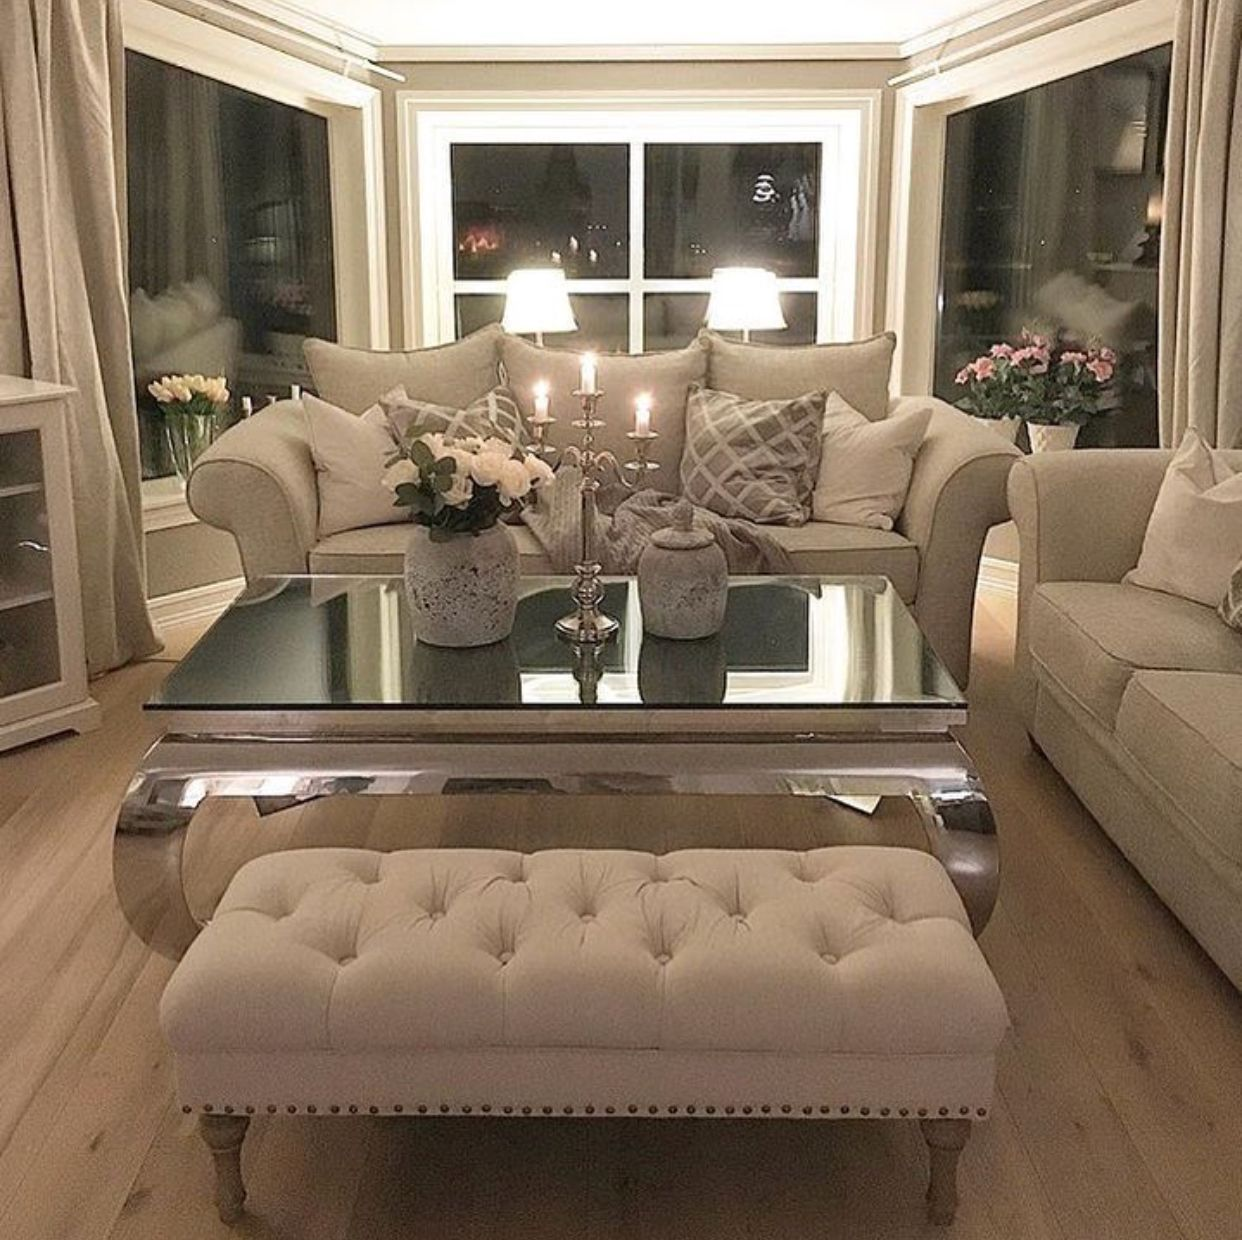 Pin On Home Decor #white #cozy #living #room